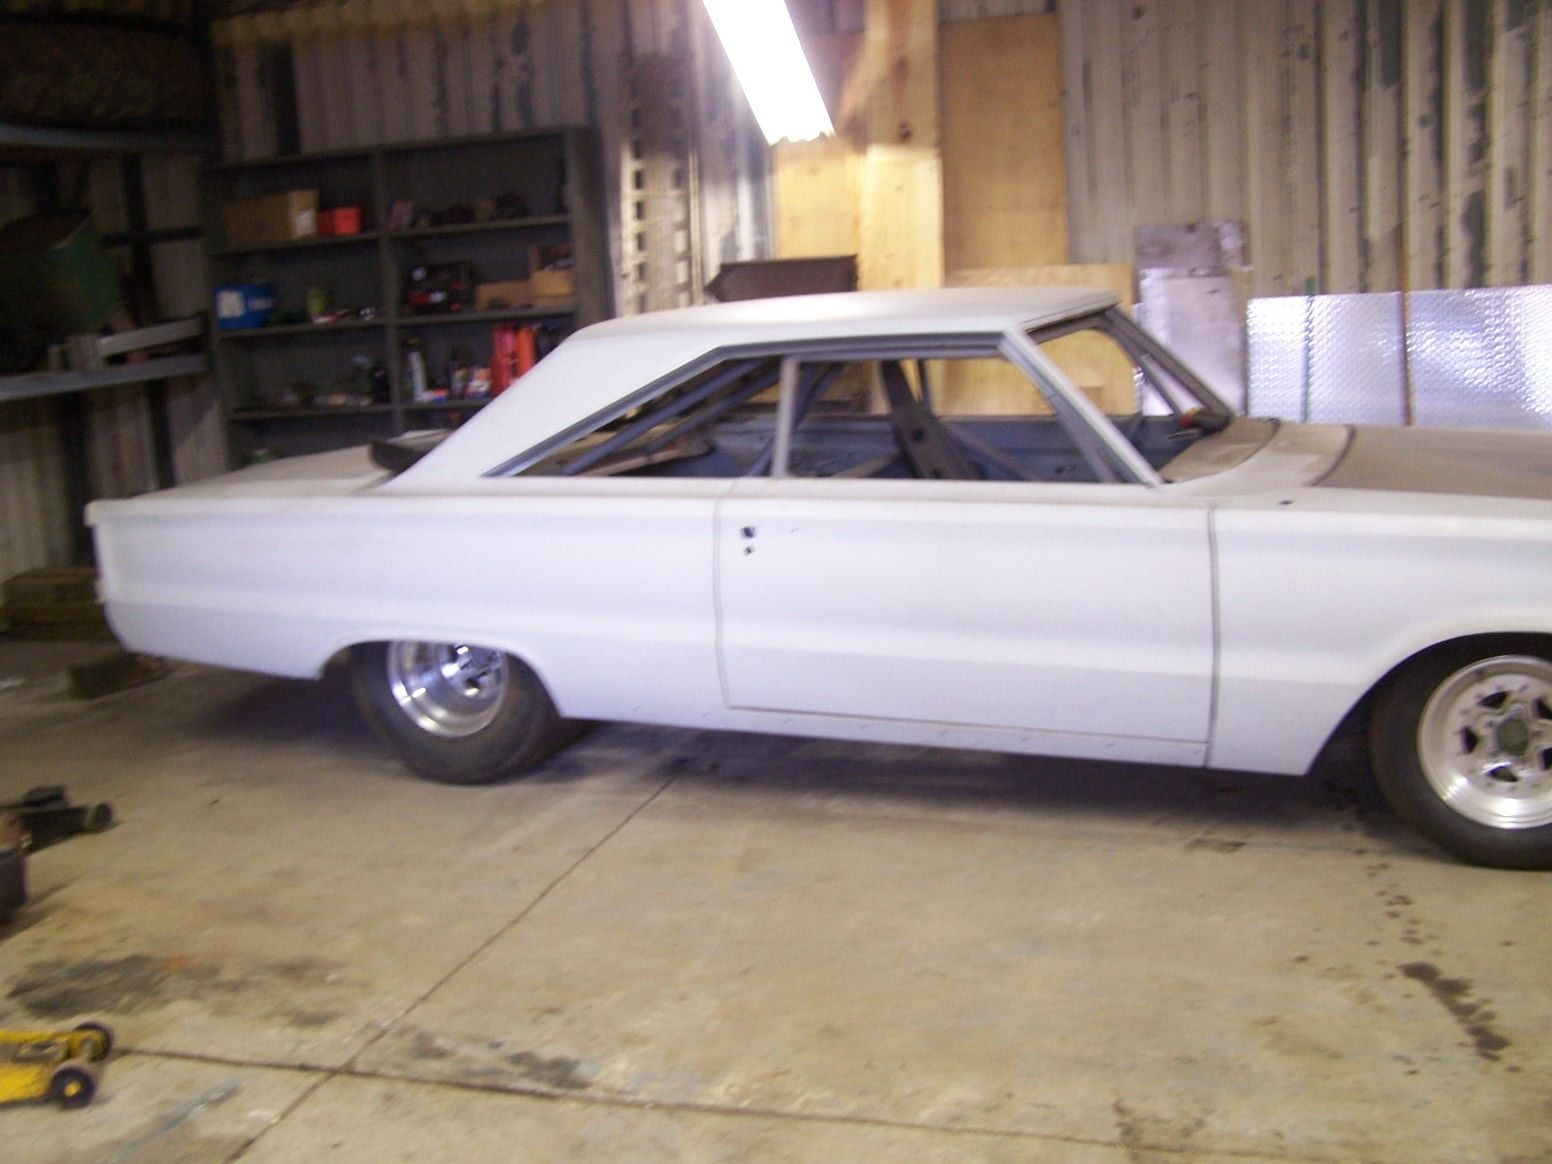 1967 Plymouth Belvedere Ii Pro Street Project With Extras For Sale Gtx Wiring Diagram Other In Boonville Indiana United States